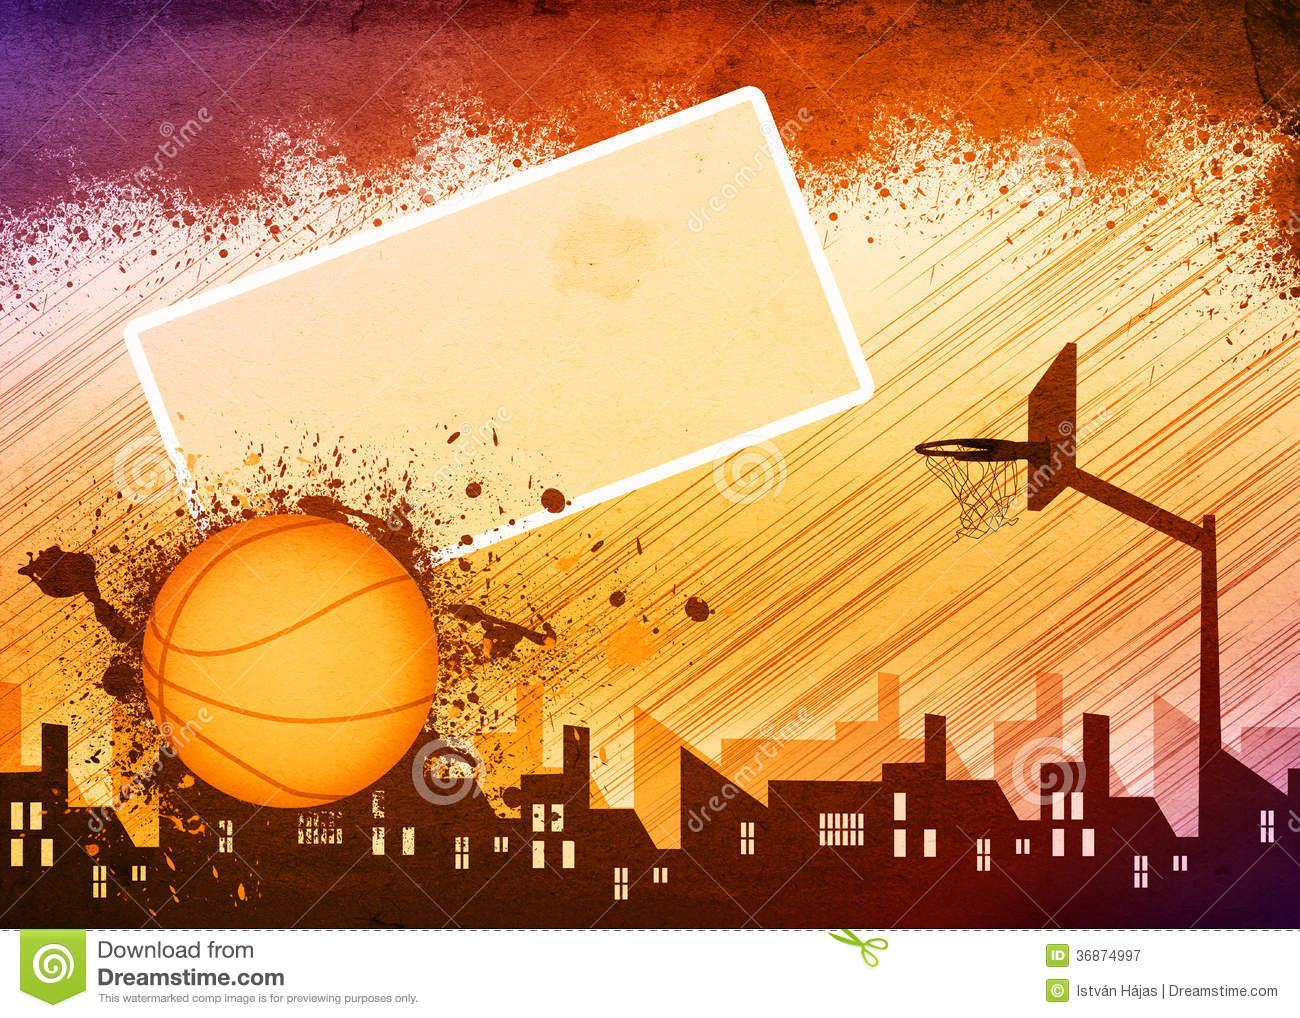 Basketball Background. Energy, Play.